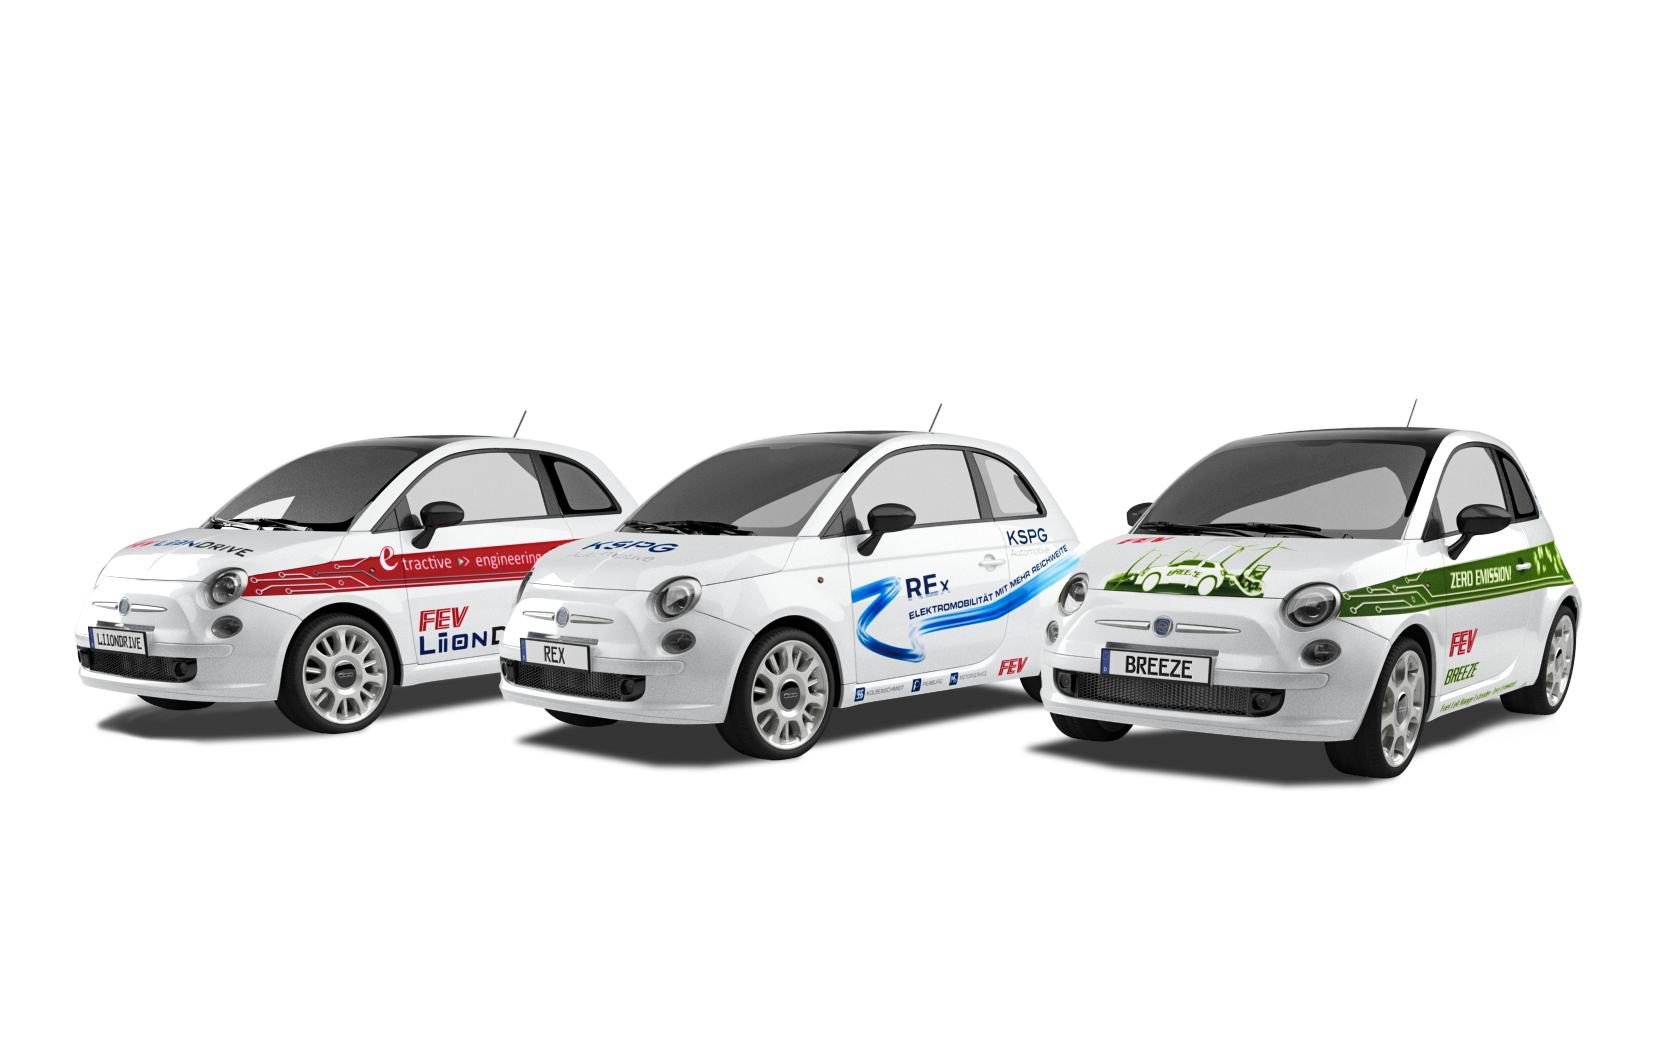 Alternative Antriebe - FEV Flotte (Fiat 500)